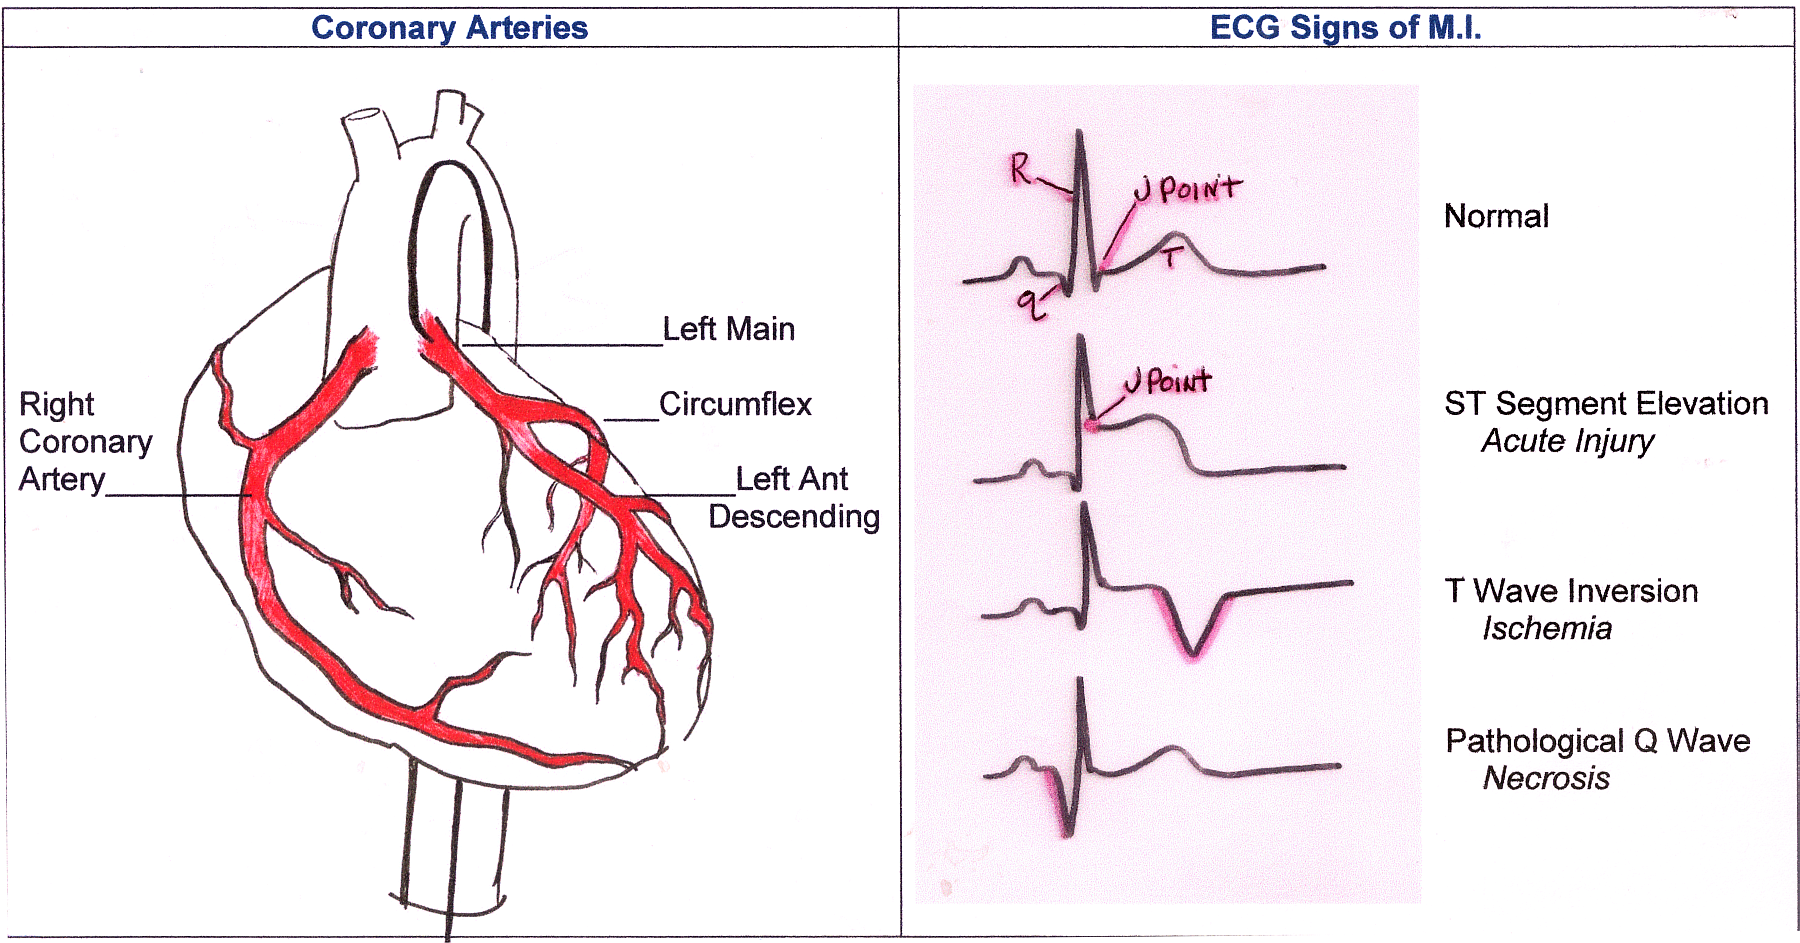 Coronary arteries and ecg signs of mi cor arteries and mi changes landscapeg pooptronica Images